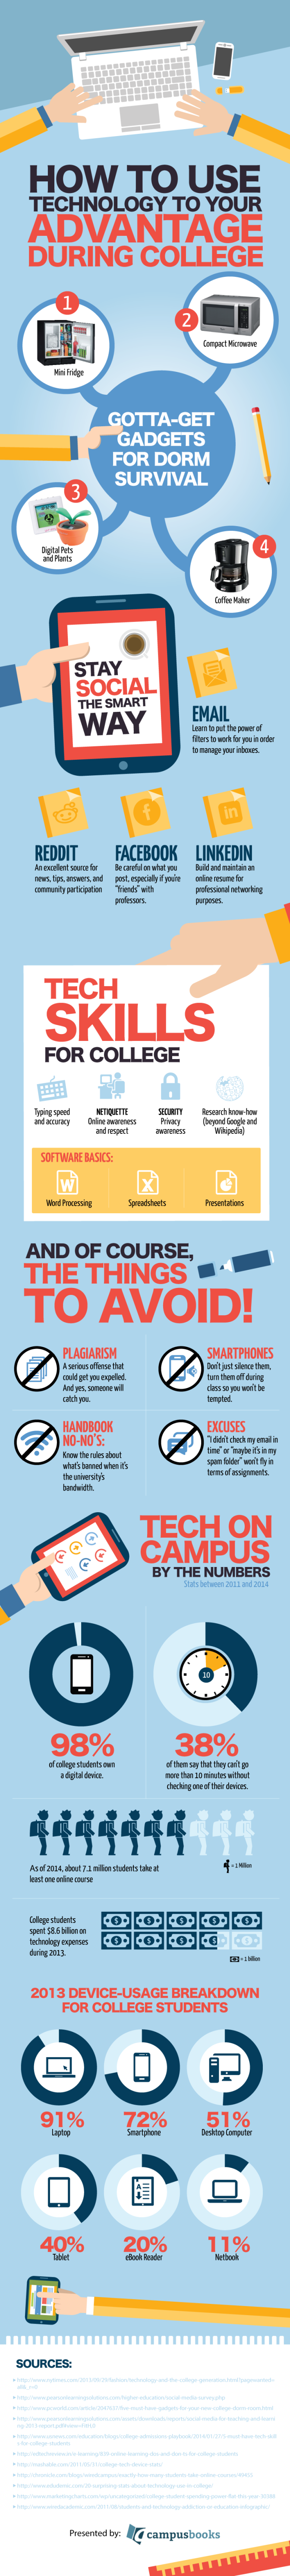 Infographic : How to Use Technology to Your Advantage During College